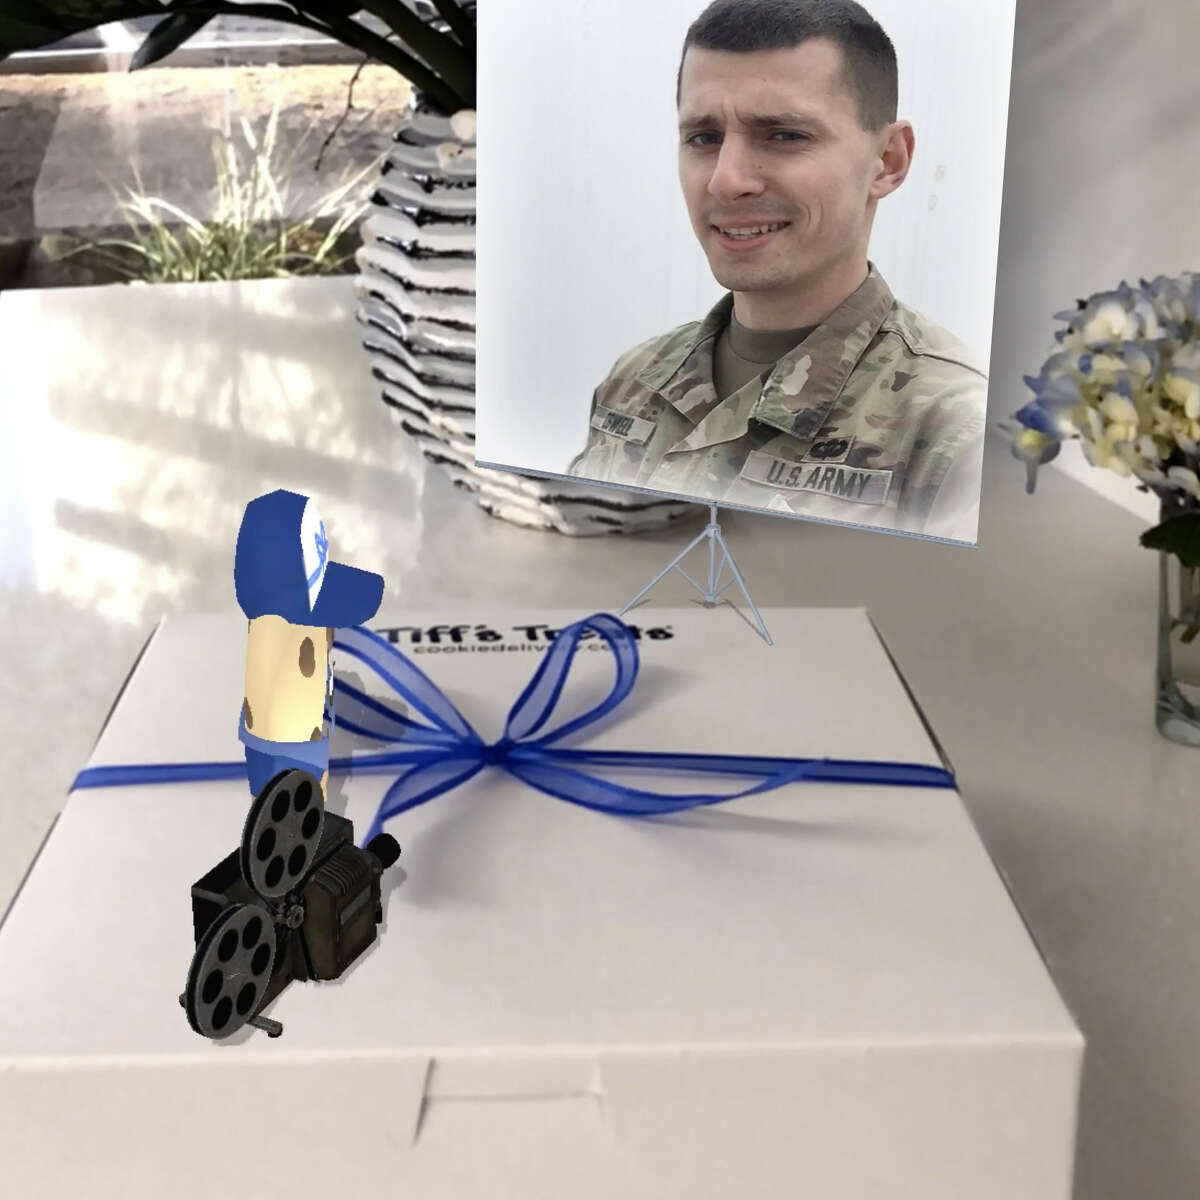 Tiff's Treats, an Austin-based cookie delivery company, partnered with the Soldiers' Angels charity organization to launch the program.